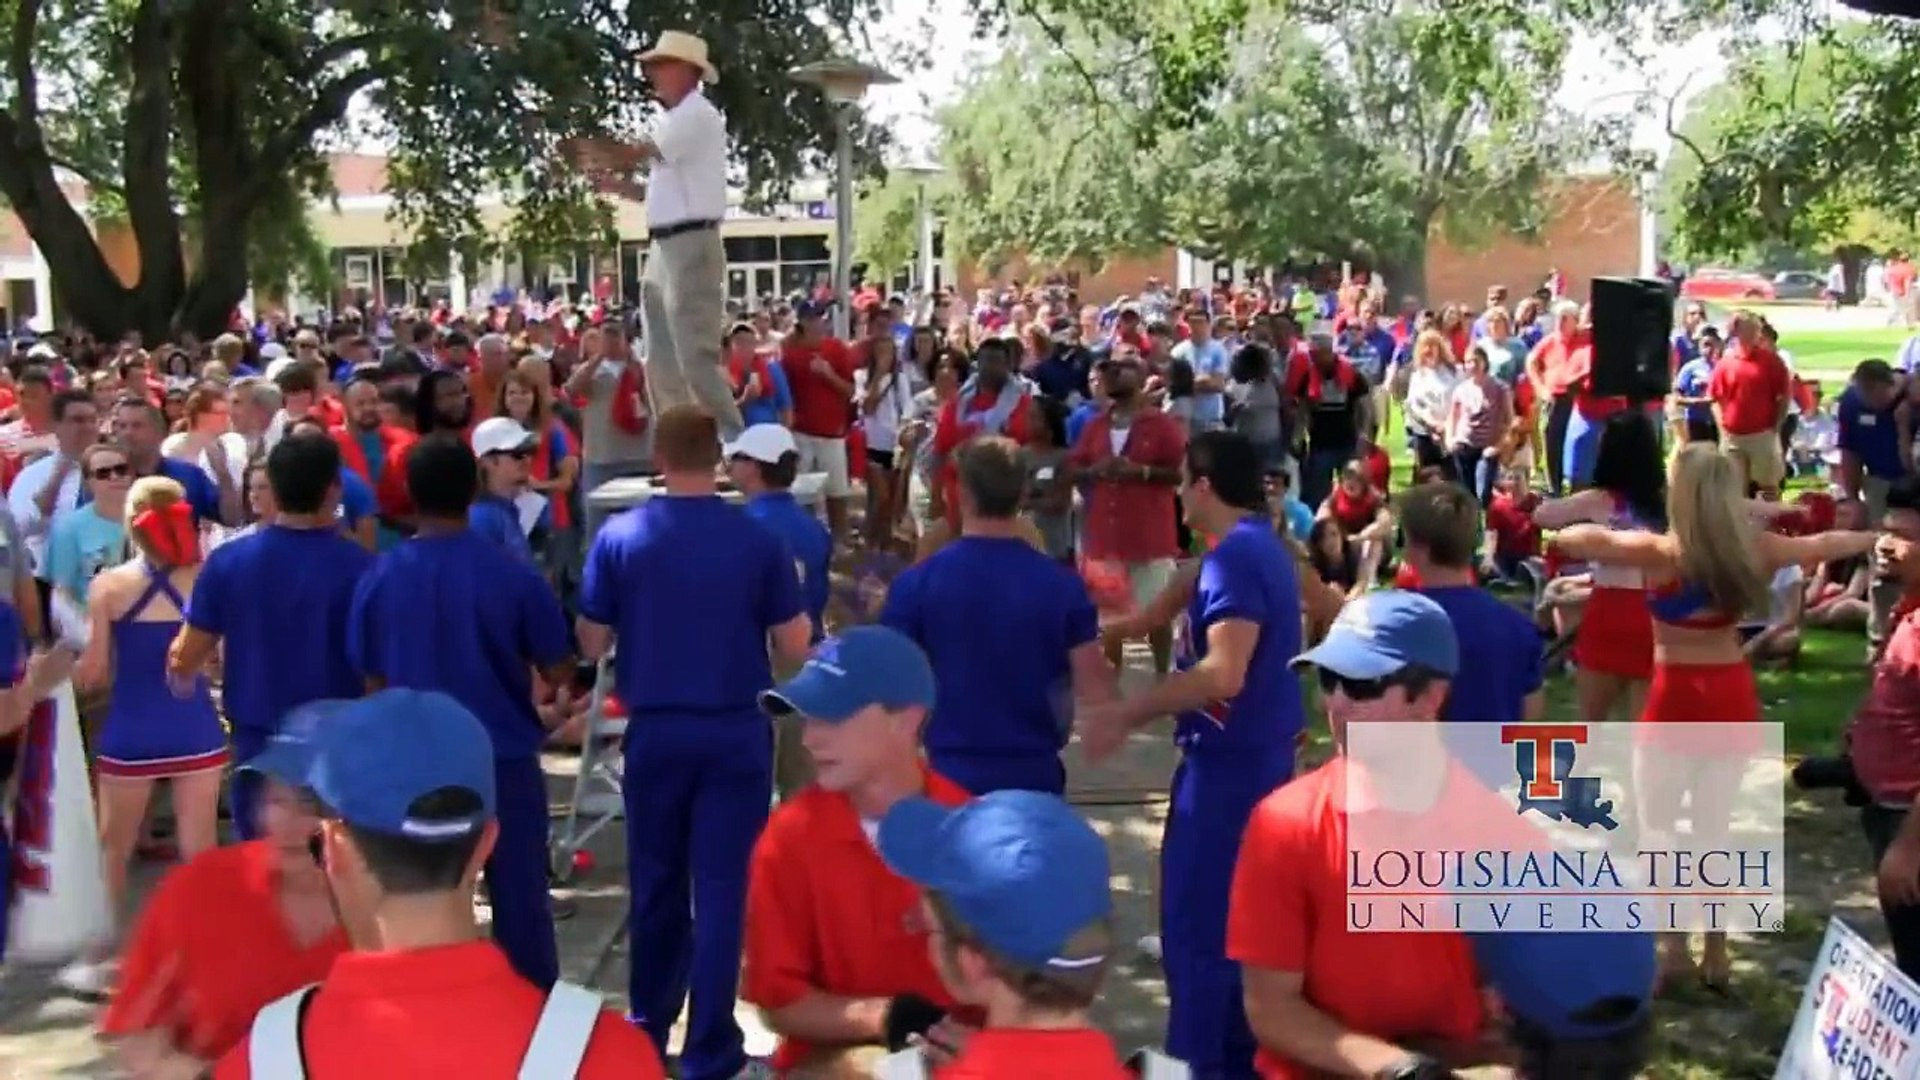 Louisiana Tech University - Time Out For Tech 2013